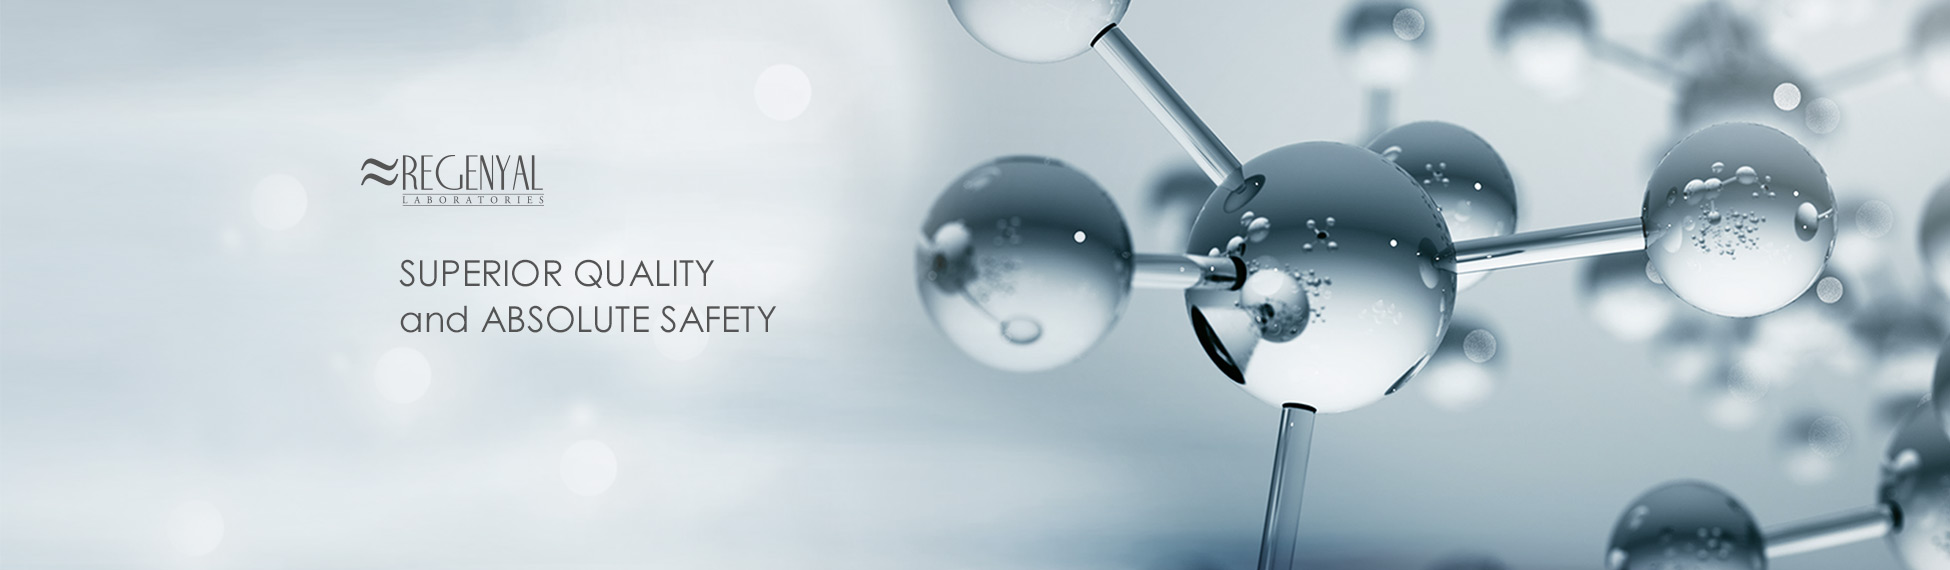 regenyal superior quality and absolute safety